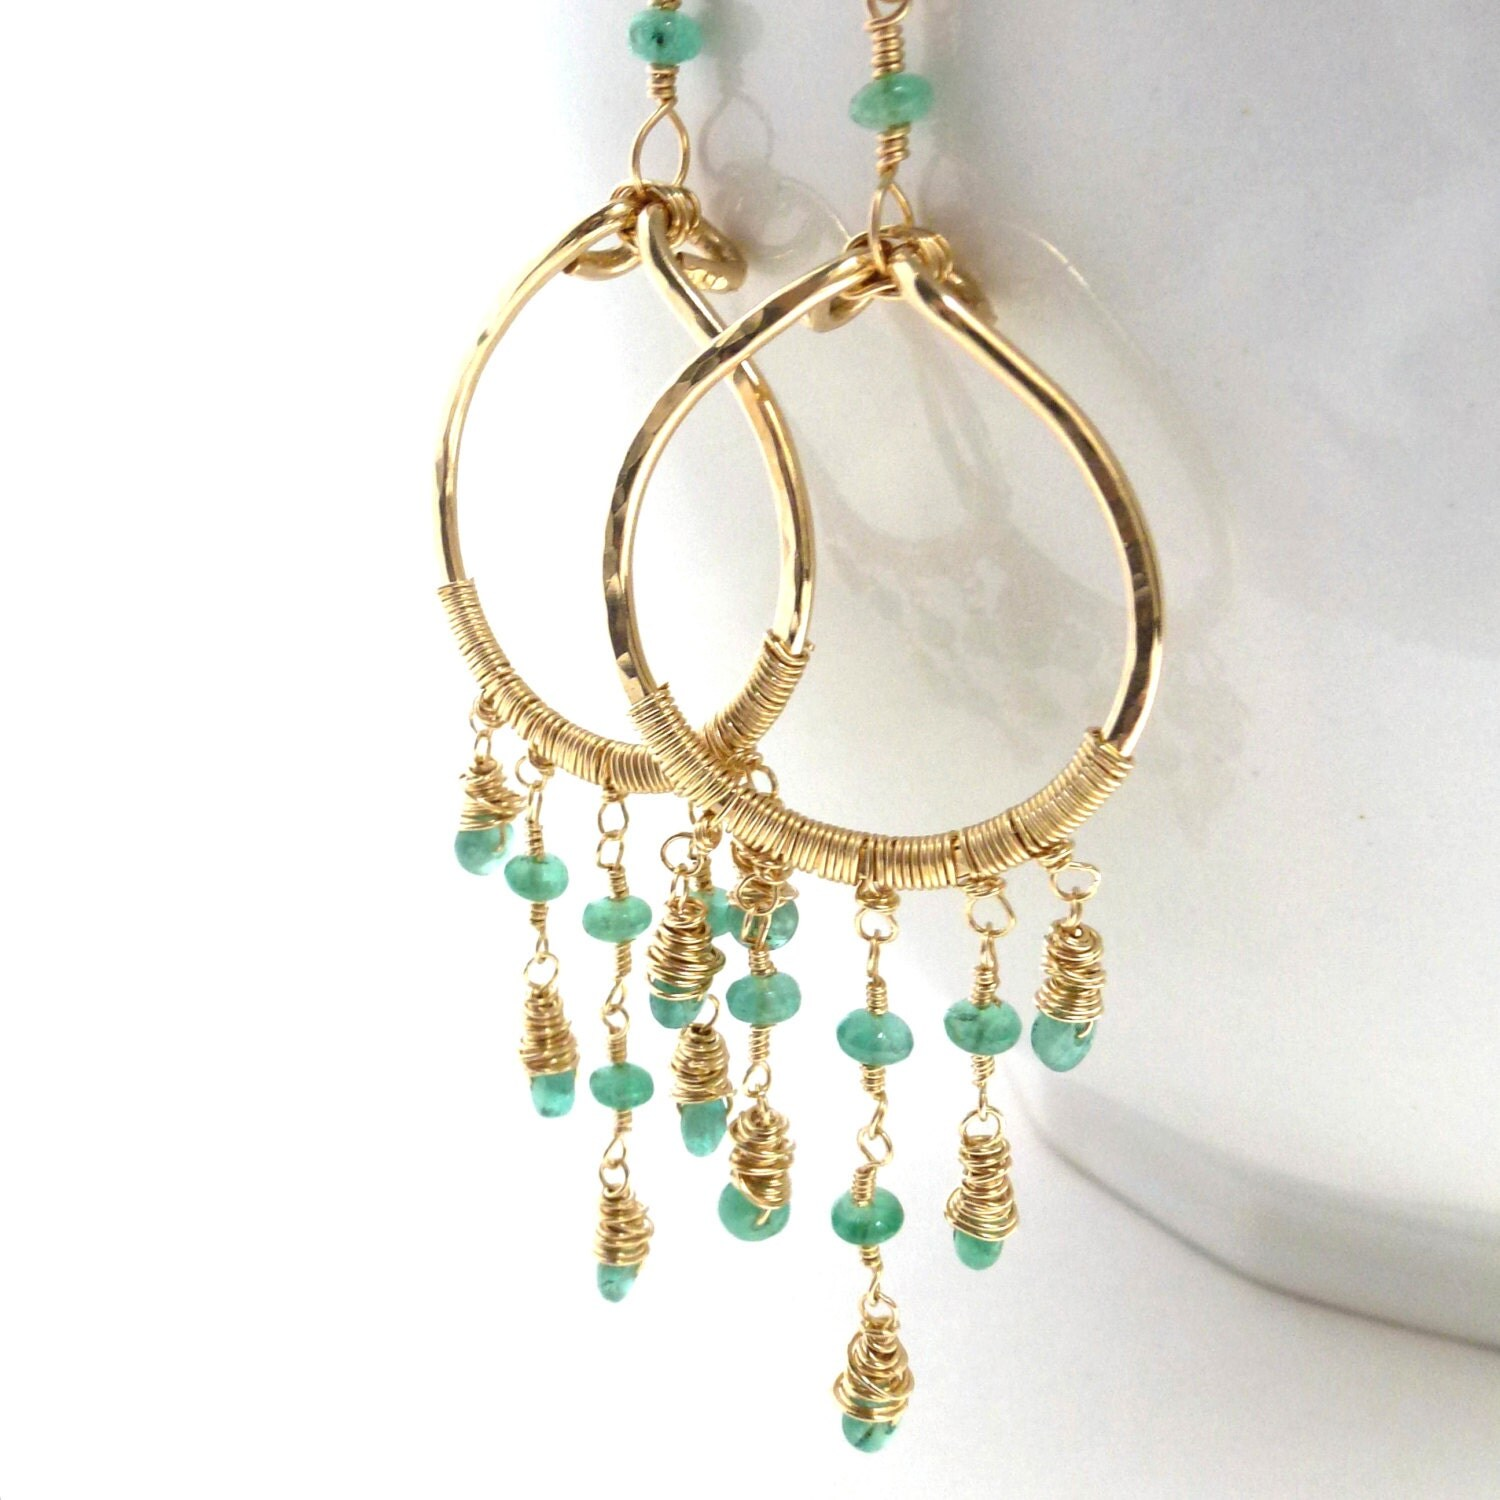 Emerald Earrings Handmade Chandelier Precious Gemstone Jewelry Gold Filled May Birthstone - LittleAppleNY